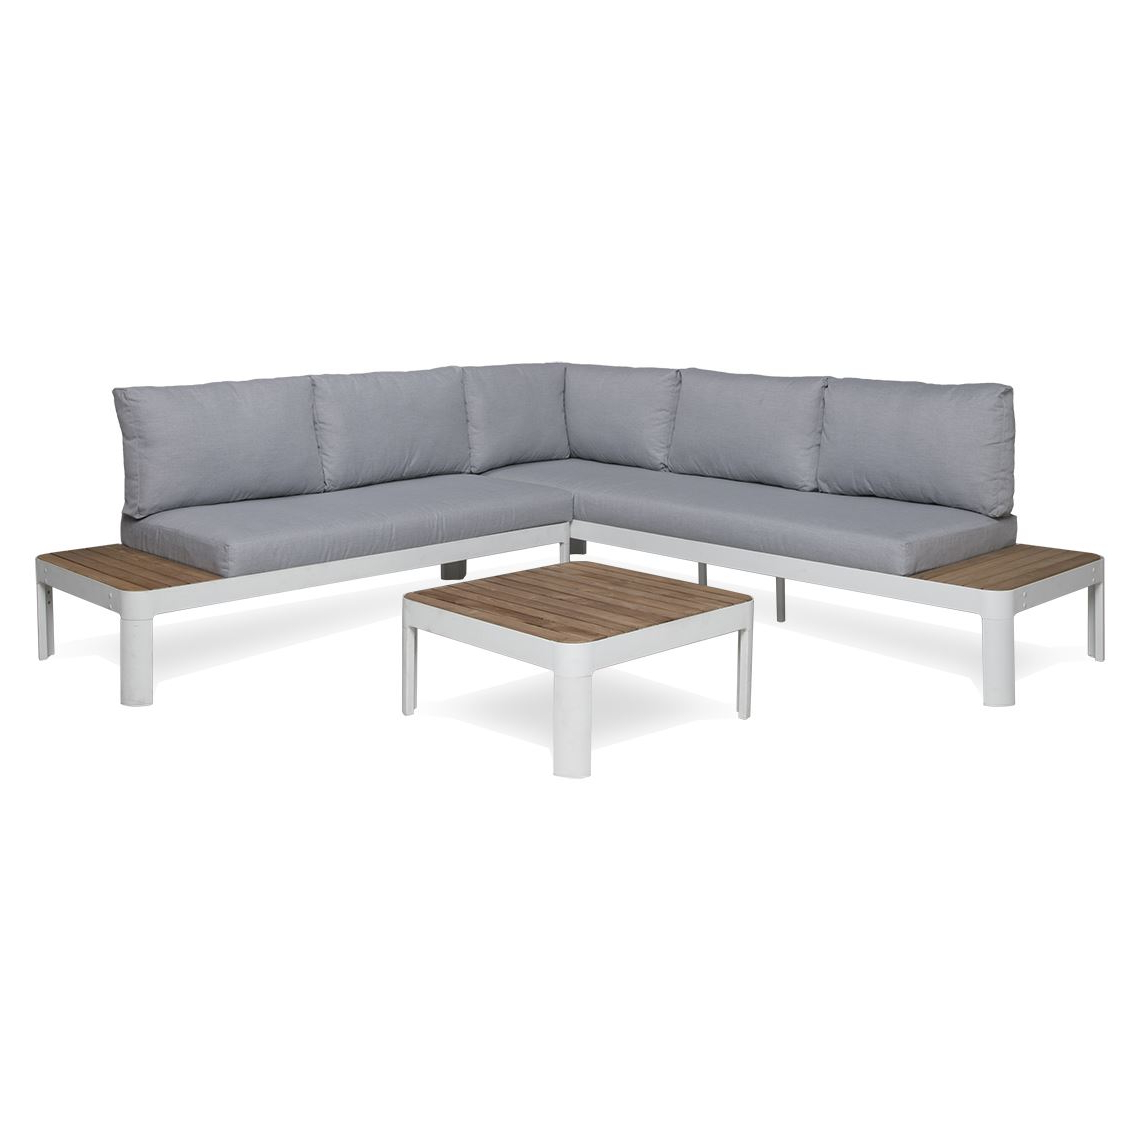 Adelphi 3 Piece Aluminium Outdoor Lounge Set, White Pertaining To Popular Olinda 3 Piece Sectionals Seating Group With Cushions (Gallery 17 of 25)